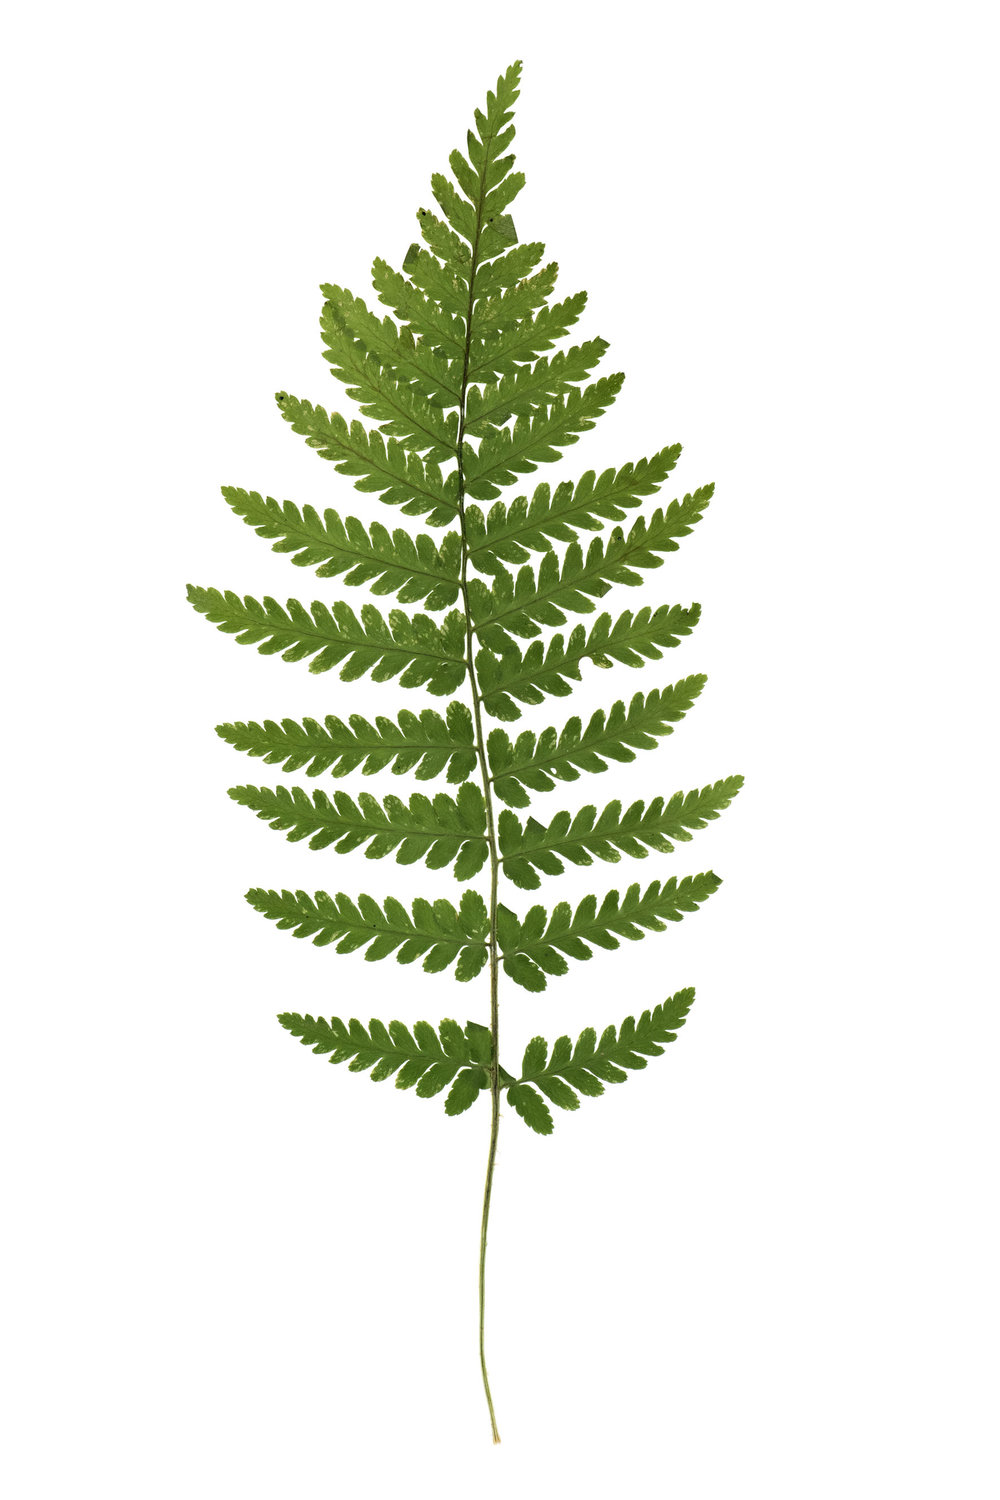 New! Spinulose Wood Fern / Dryopteris carthusiana